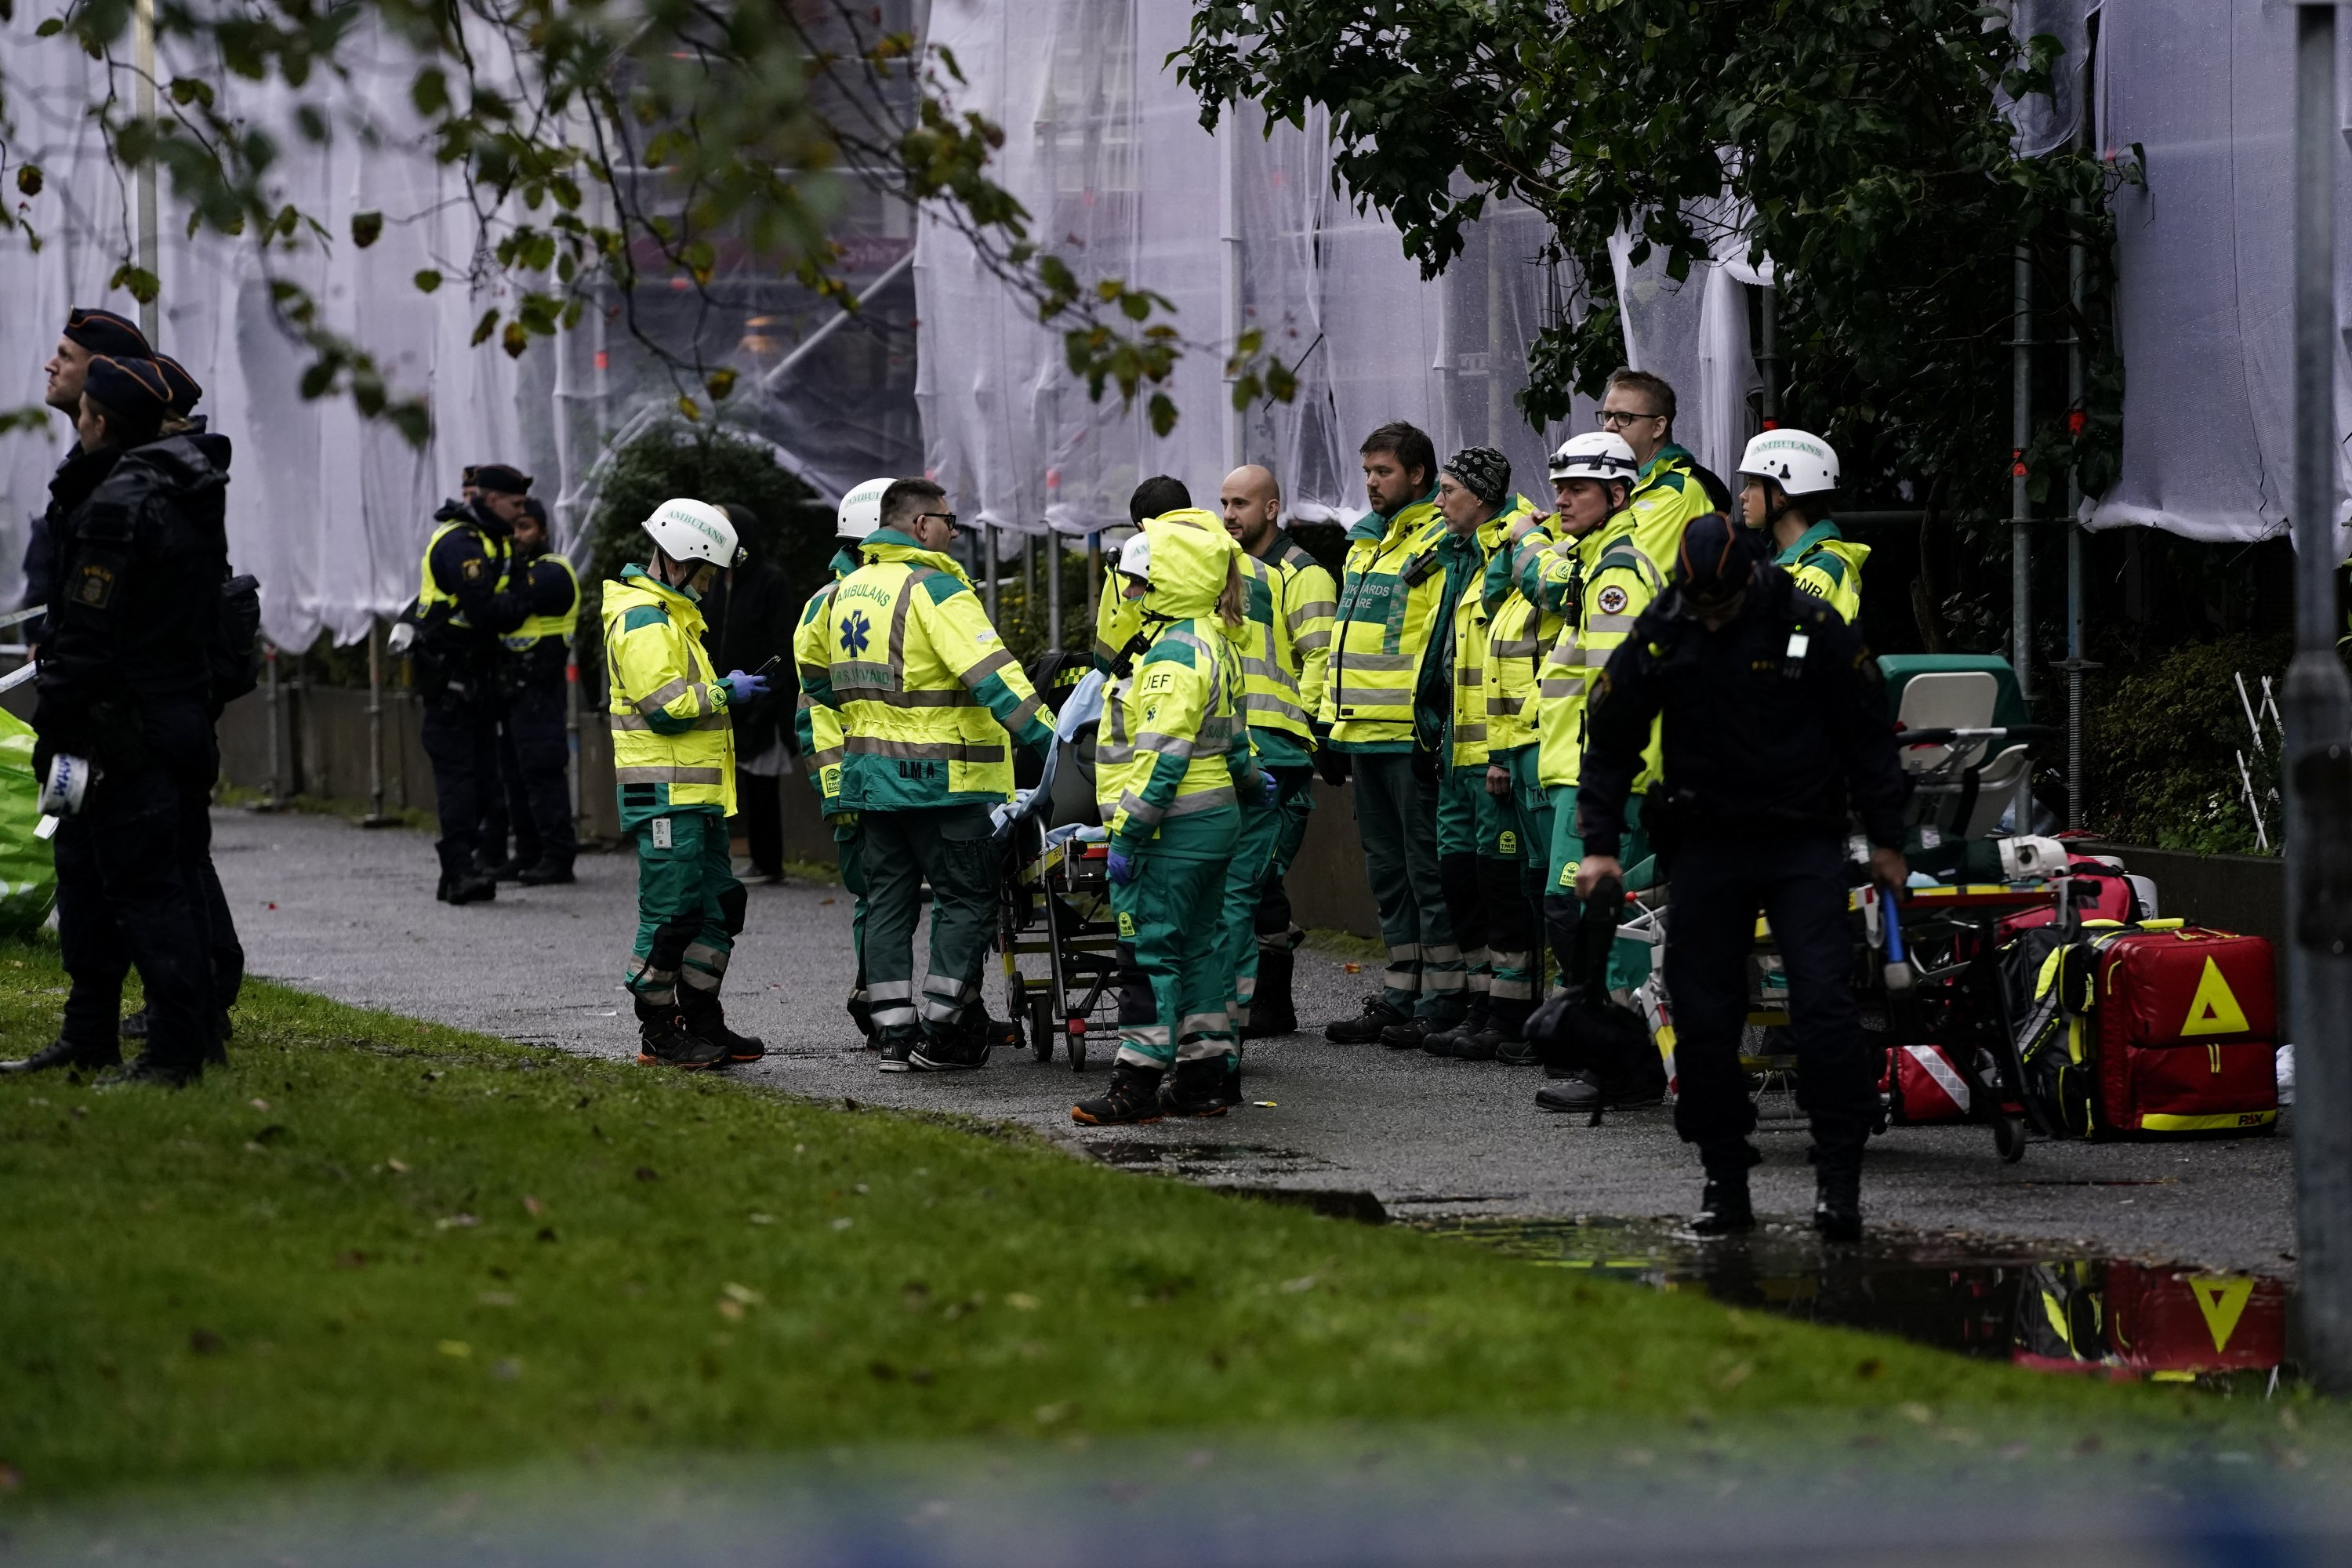 An emergency services crew works to evacuate people and put out a fire after an explosion hit an apartment building in Annedal, central Gothenburg, Sweden, Sept. 28, 2021. (Reuters Photo)